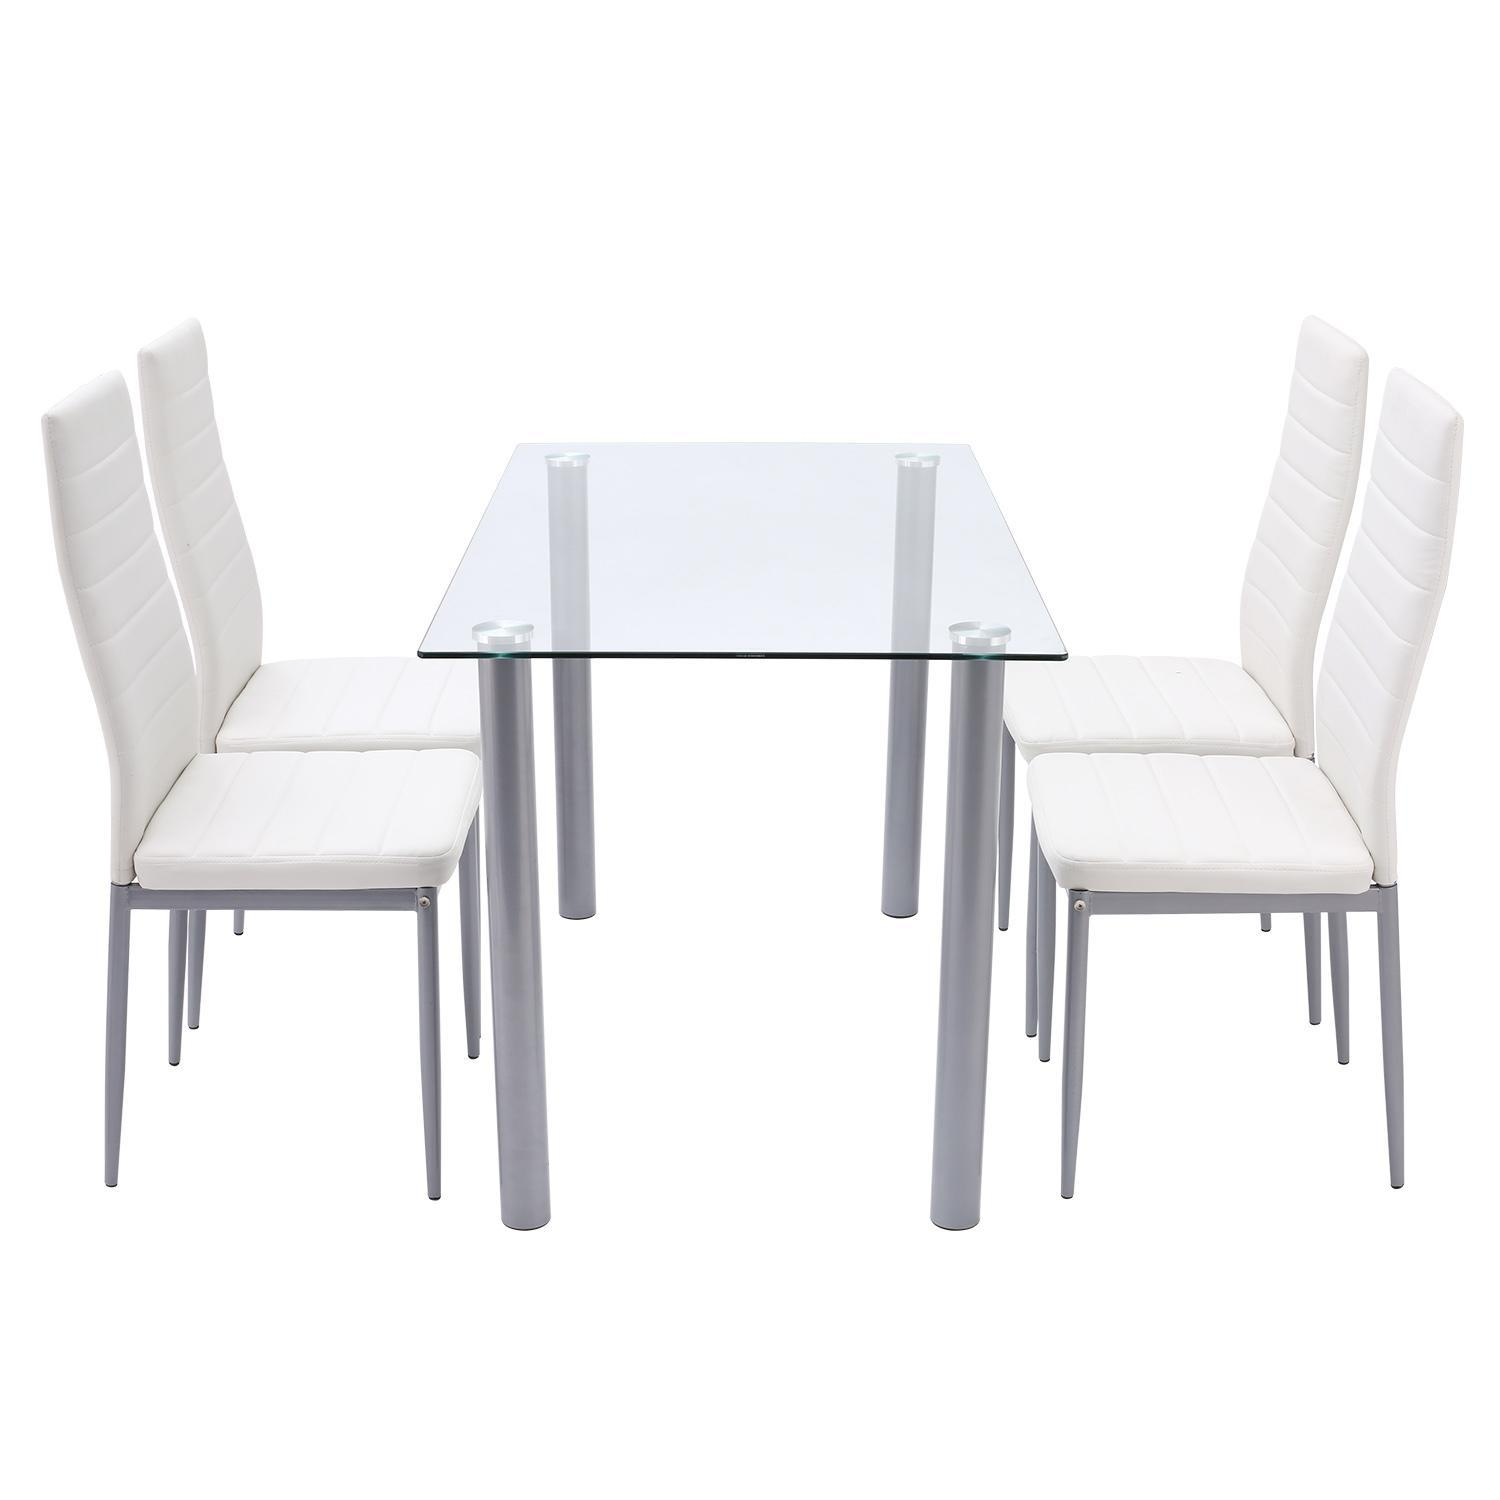 2018 Best Ppoular 5 Piece Dining Set Clear Tempered Glass Rectangle Dining  Table With 4pcs